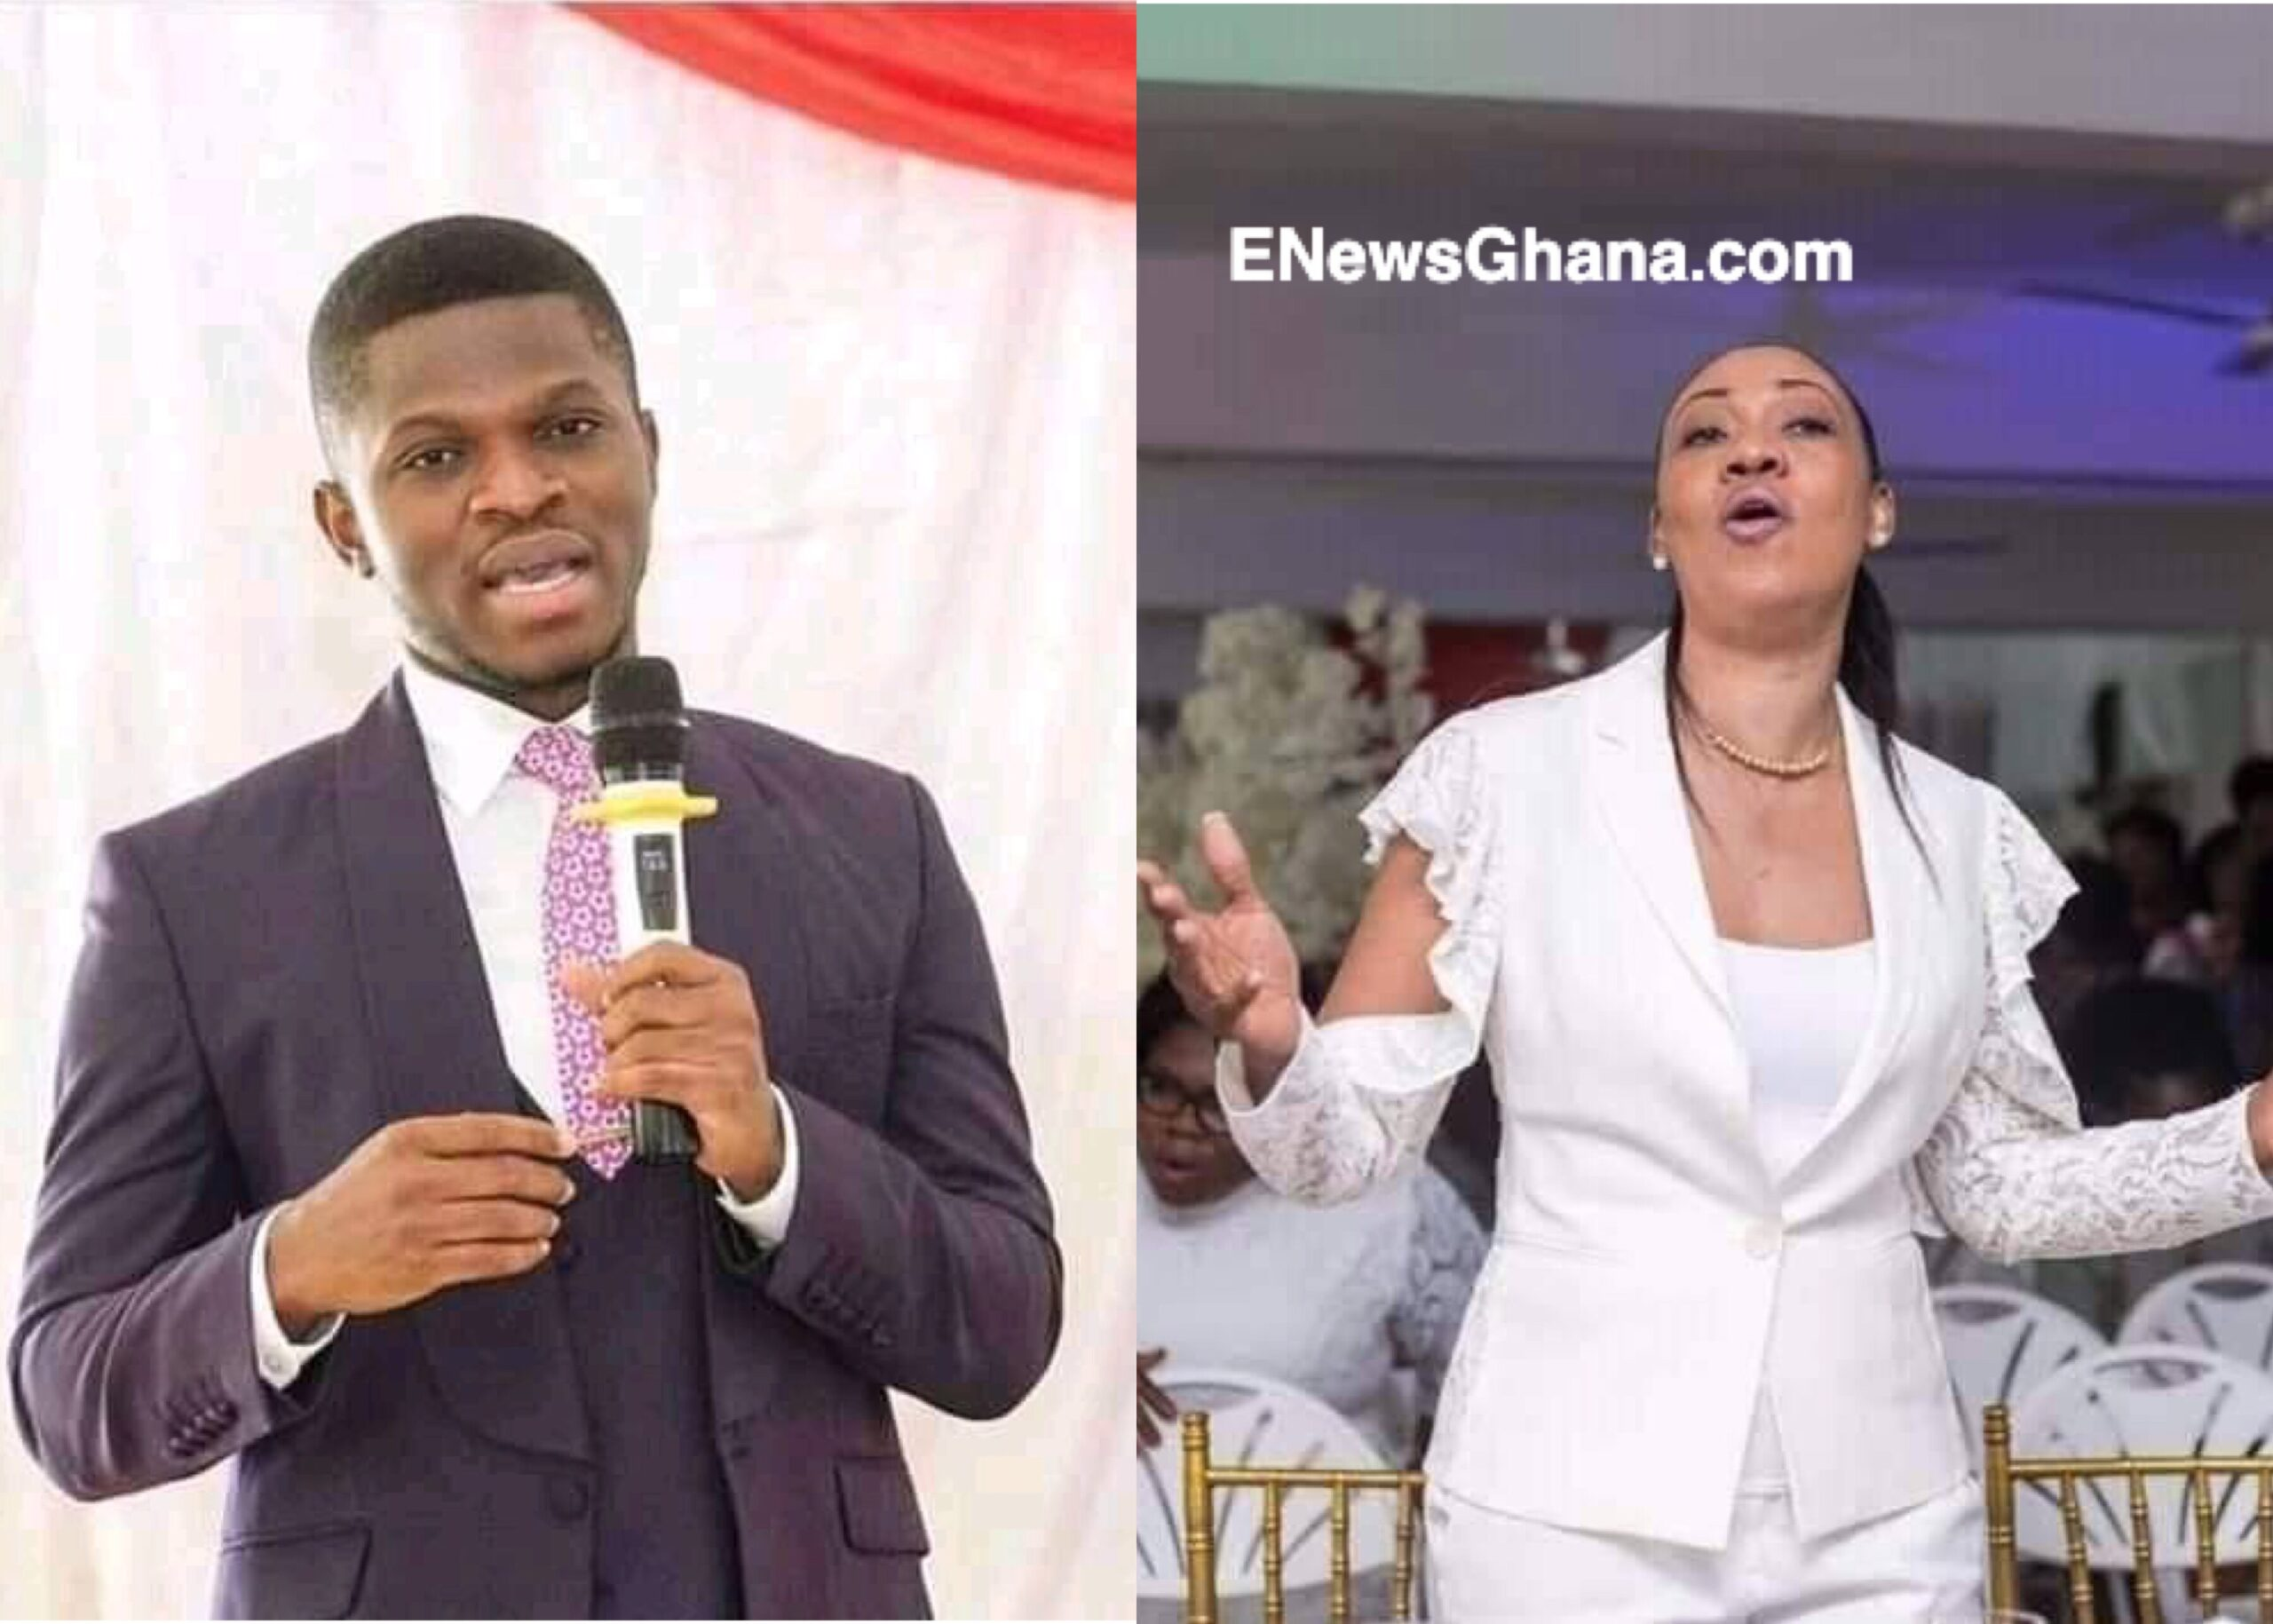 Even If Supreme Court Rules Against Us, We Will Use Every Means To Hold Jean Mensa Accountable – Sammy Gyamfi Tells Ghanaians